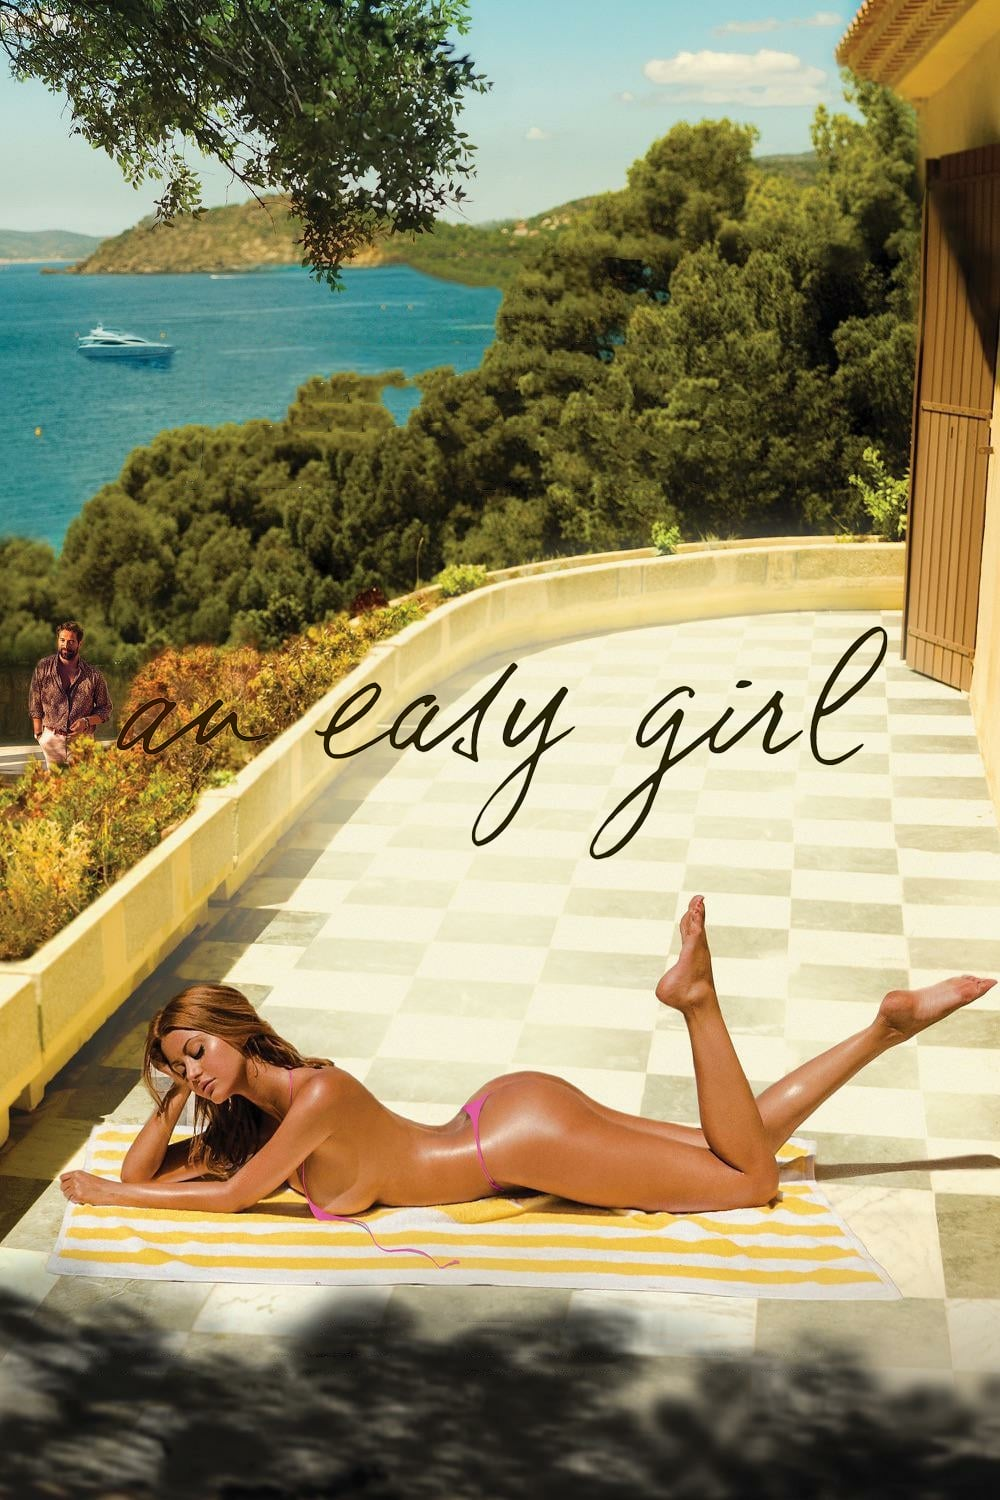 download or watch An Easy Girl full movie online free openload